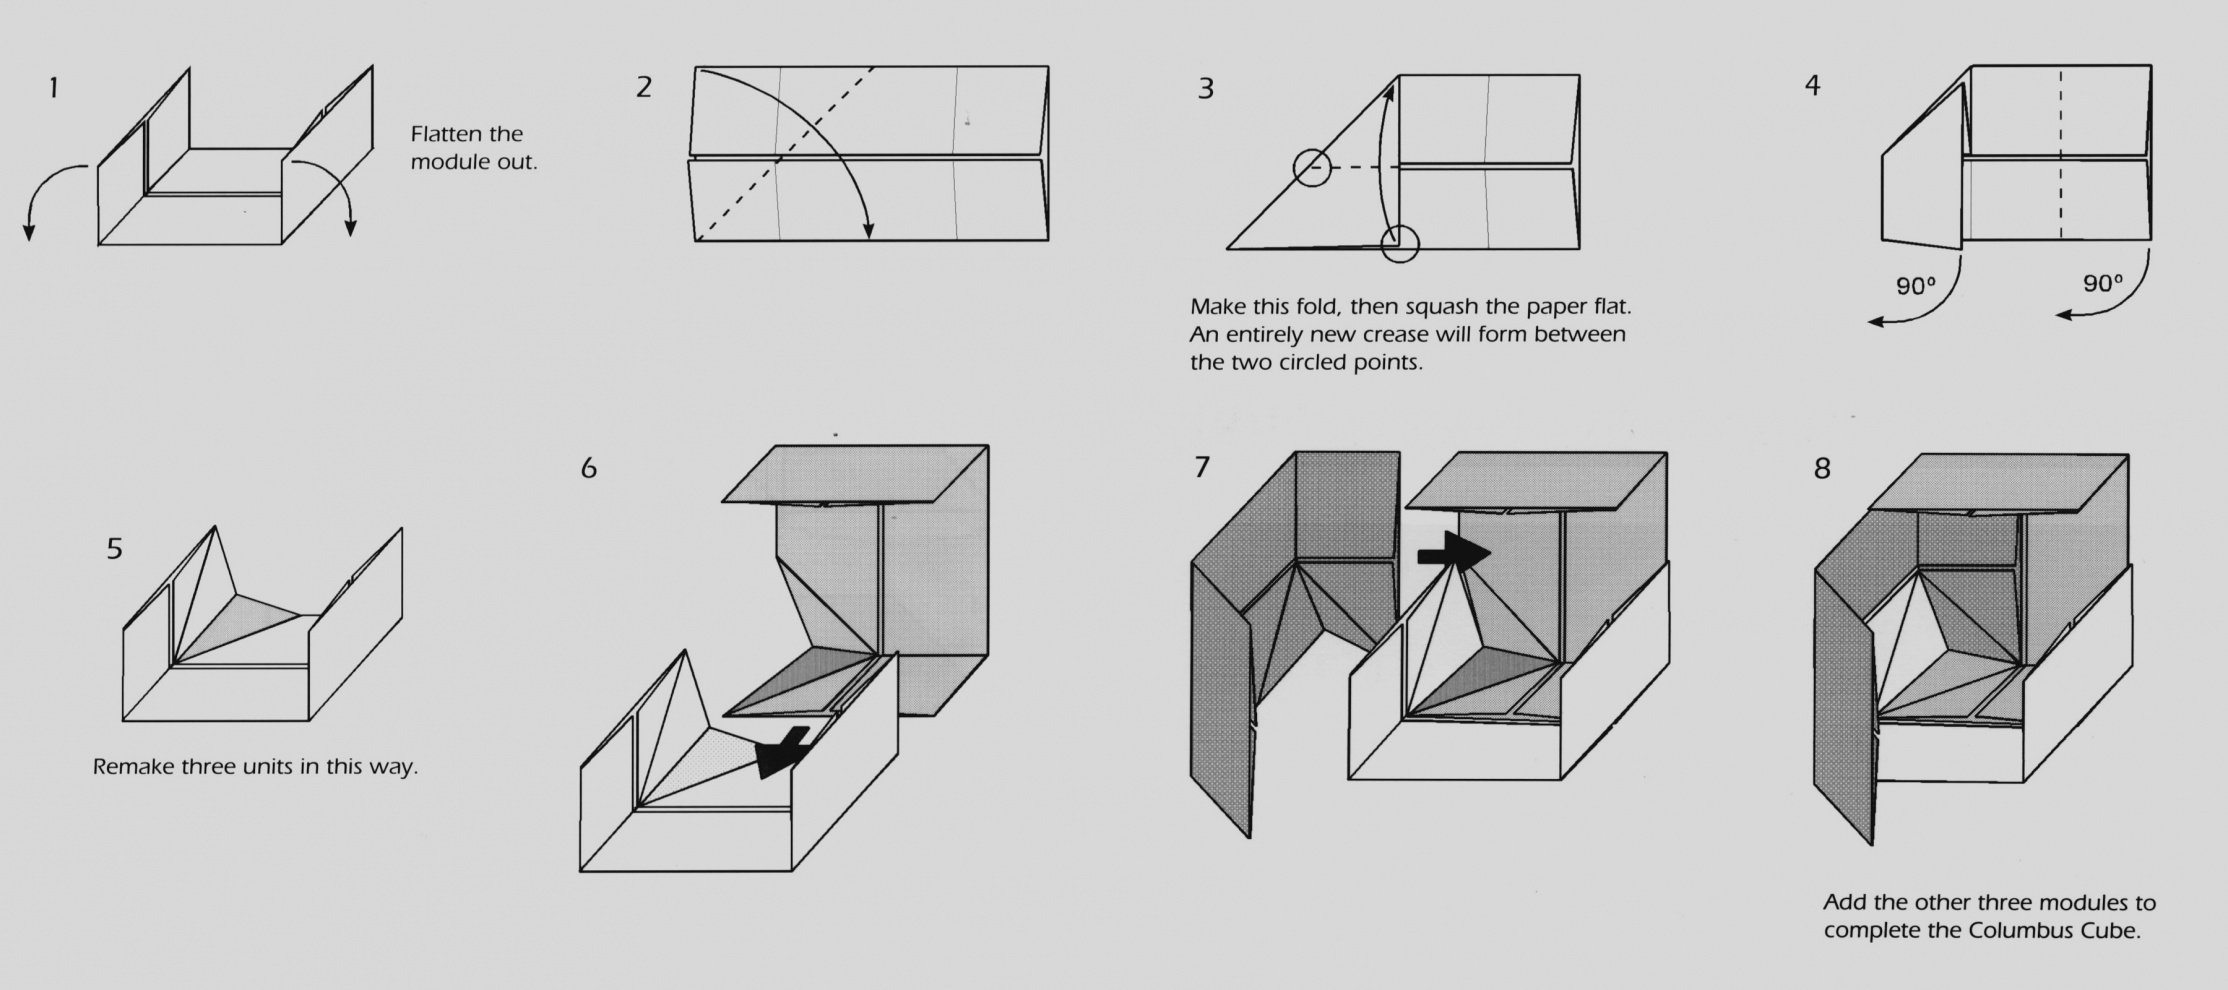 How To Fold Origami Cube How To Fold Origami Origami Fold Your Own Fold Origami